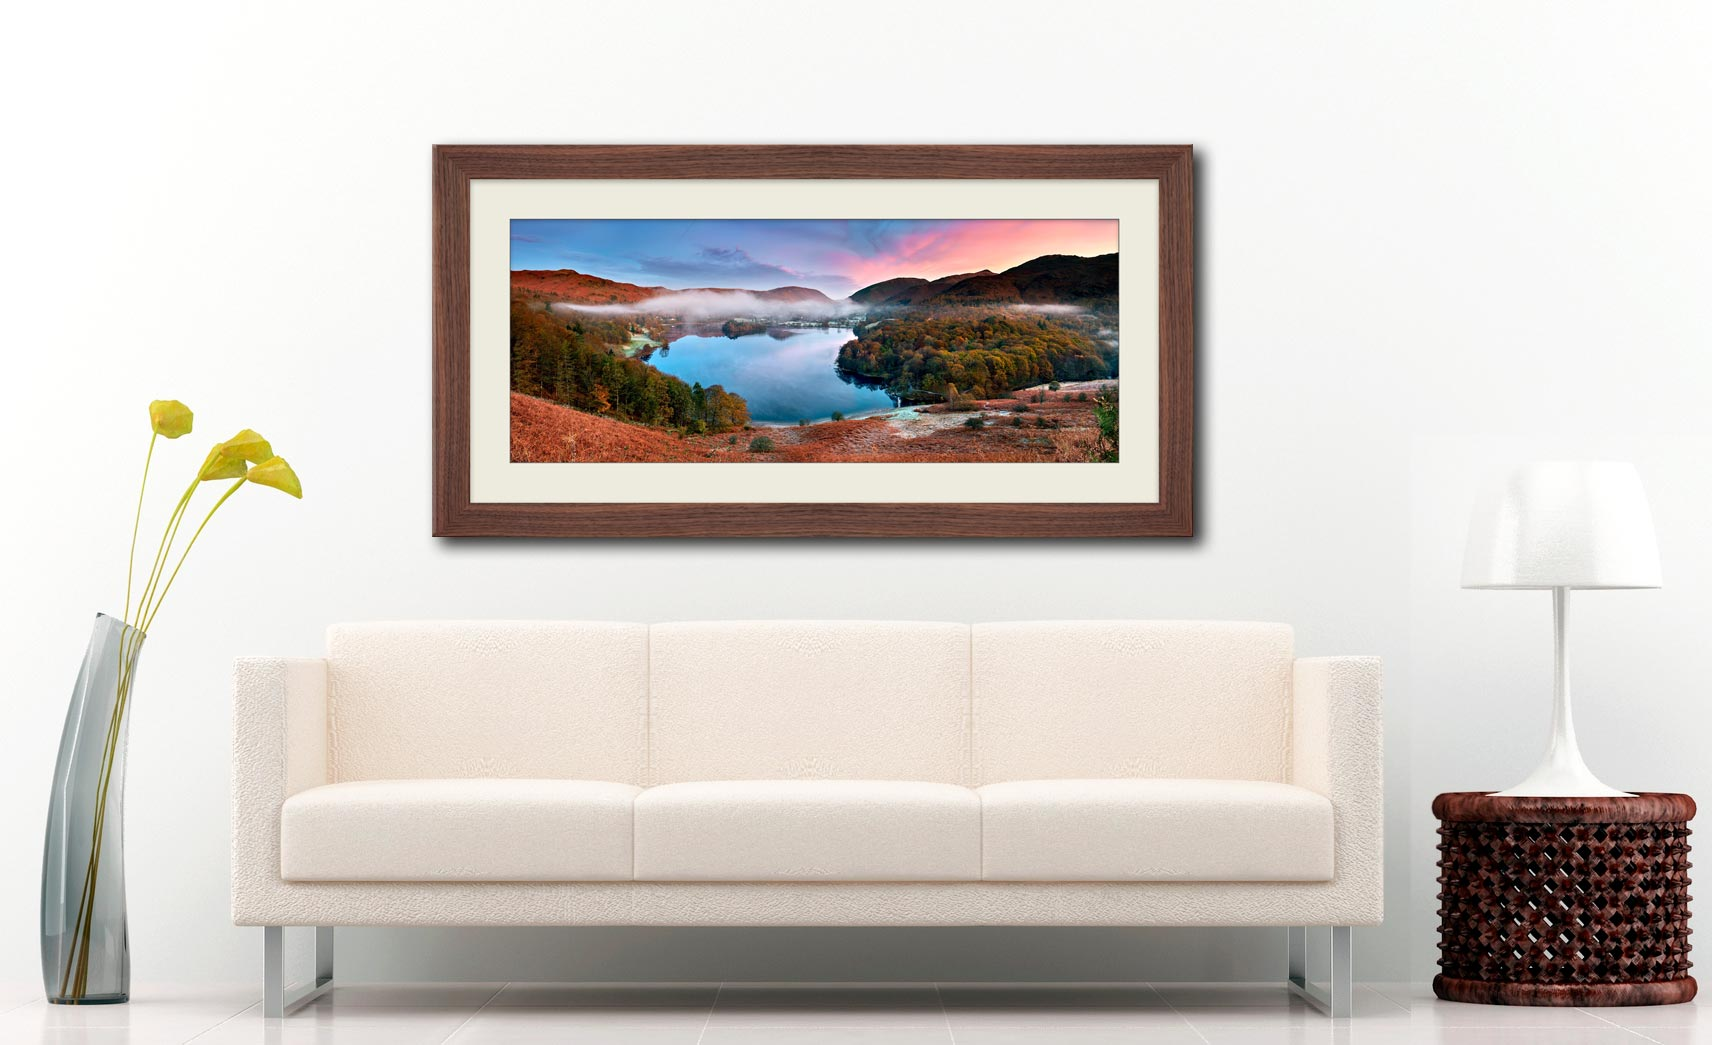 Dawn Colours of Grasmere - Framed Print with Mount on Wall